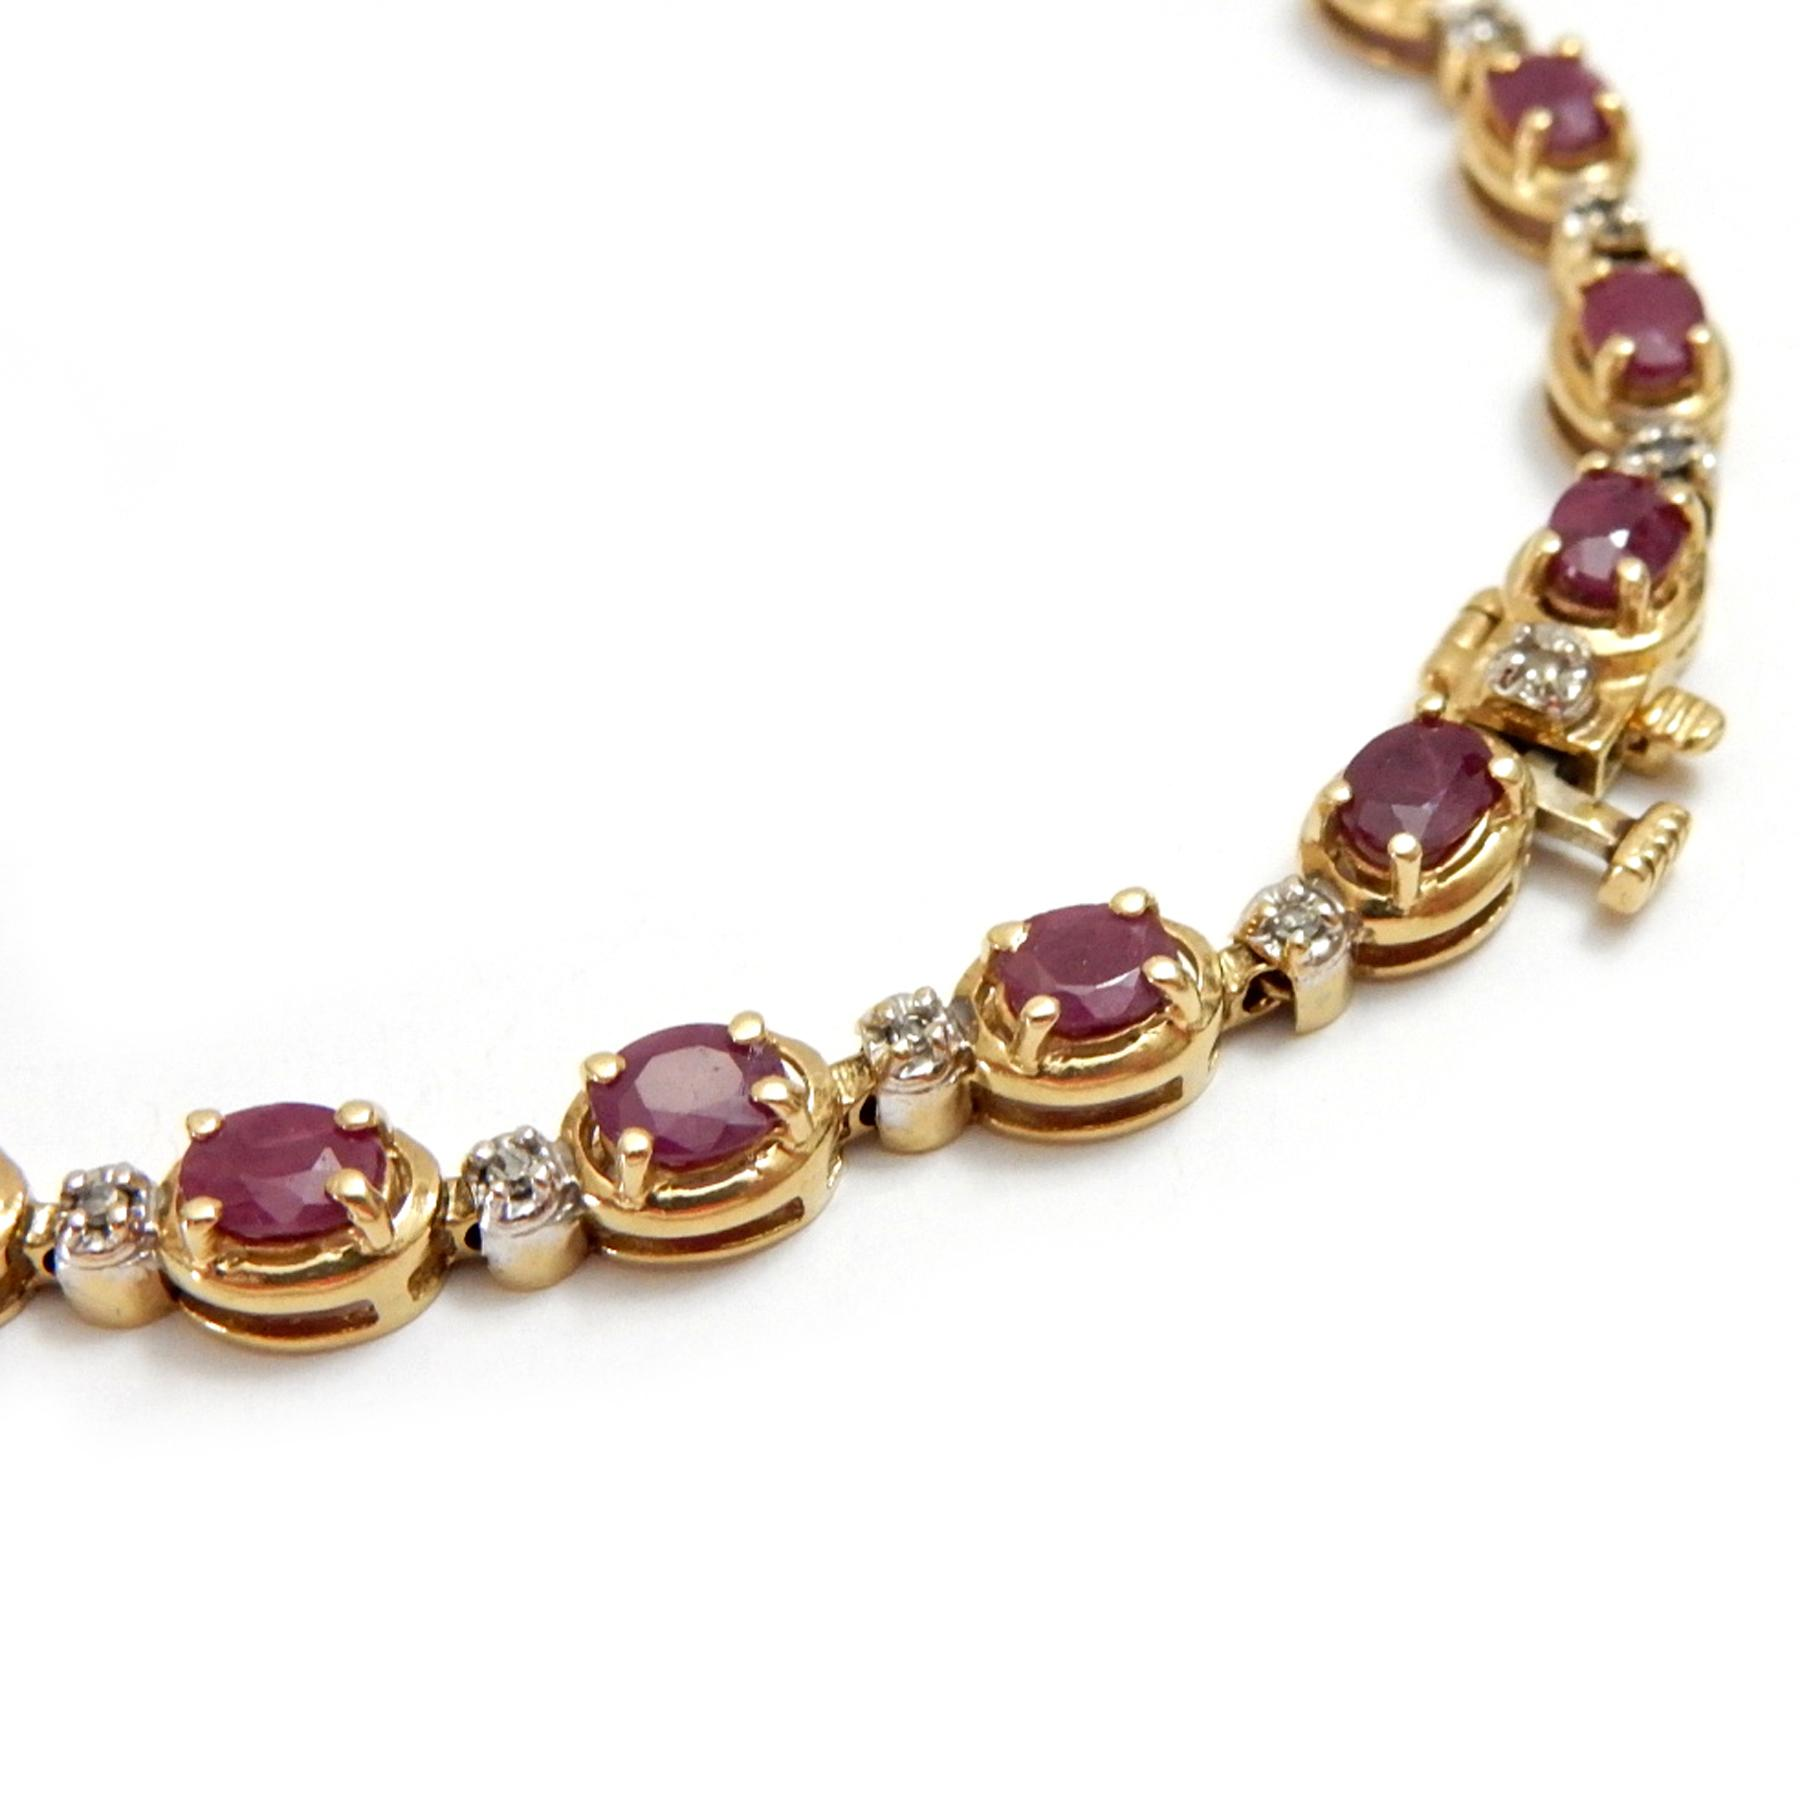 14k gold link bracelet with ruby and diamond accents from